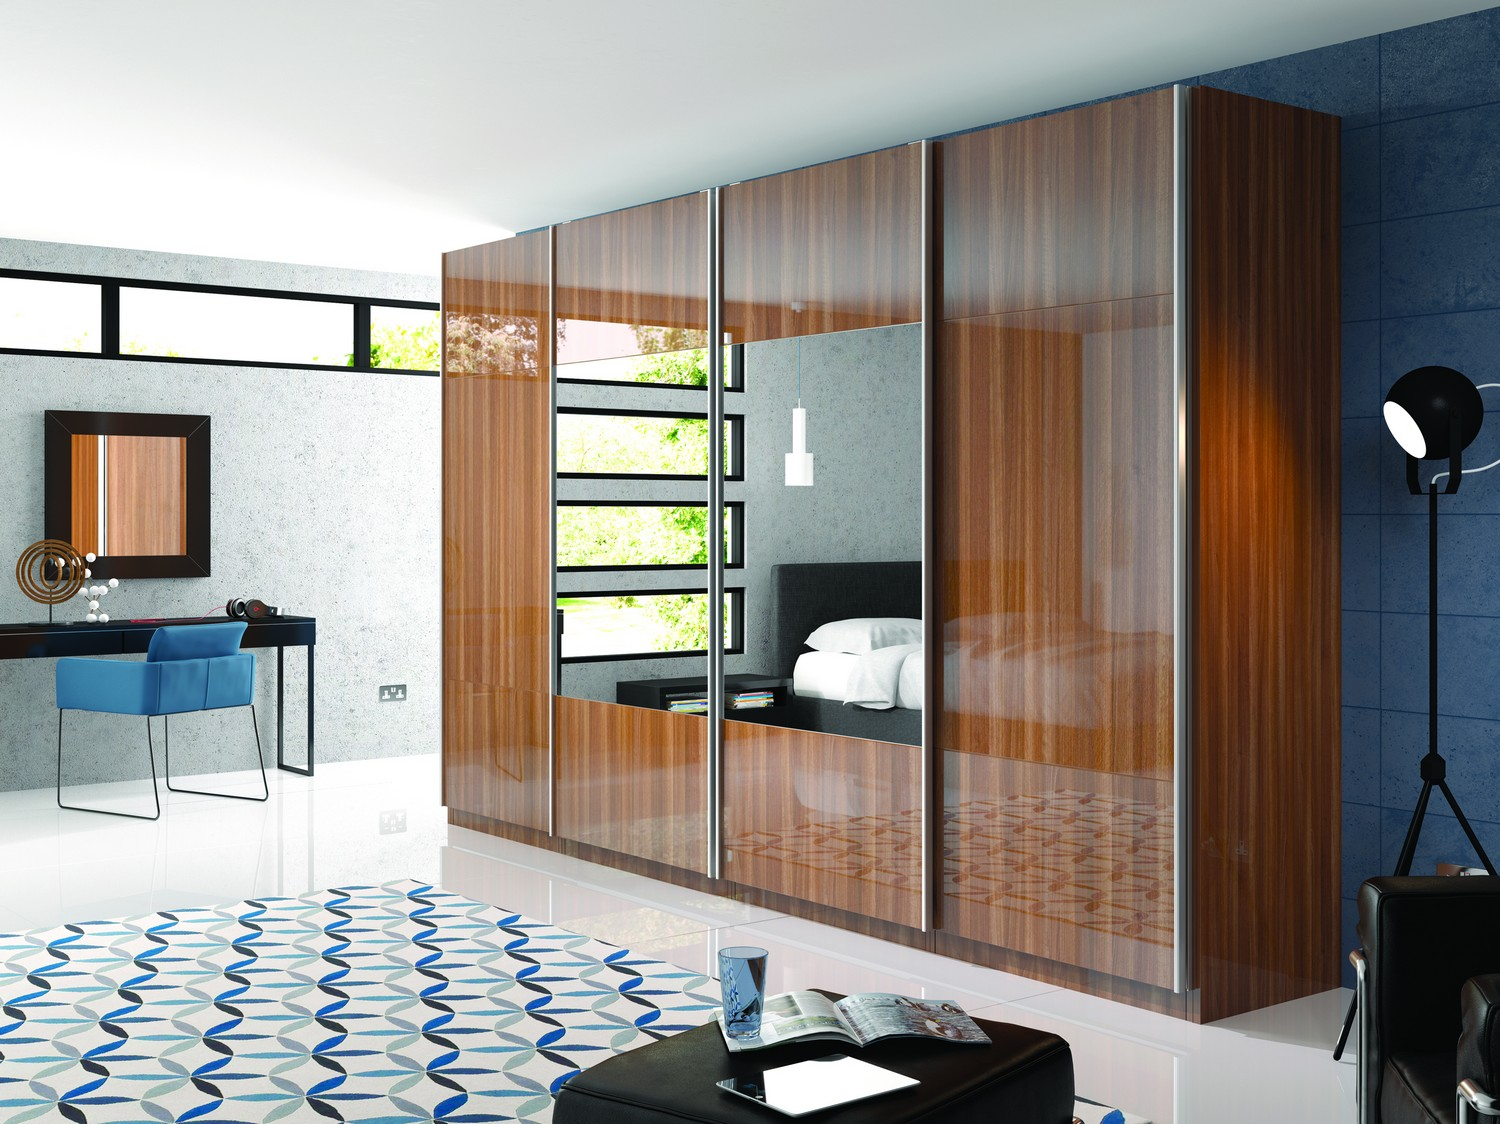 Gloss walnut sliding door wardrobe system with mirrored glass panels featuring a unique internal storage system.